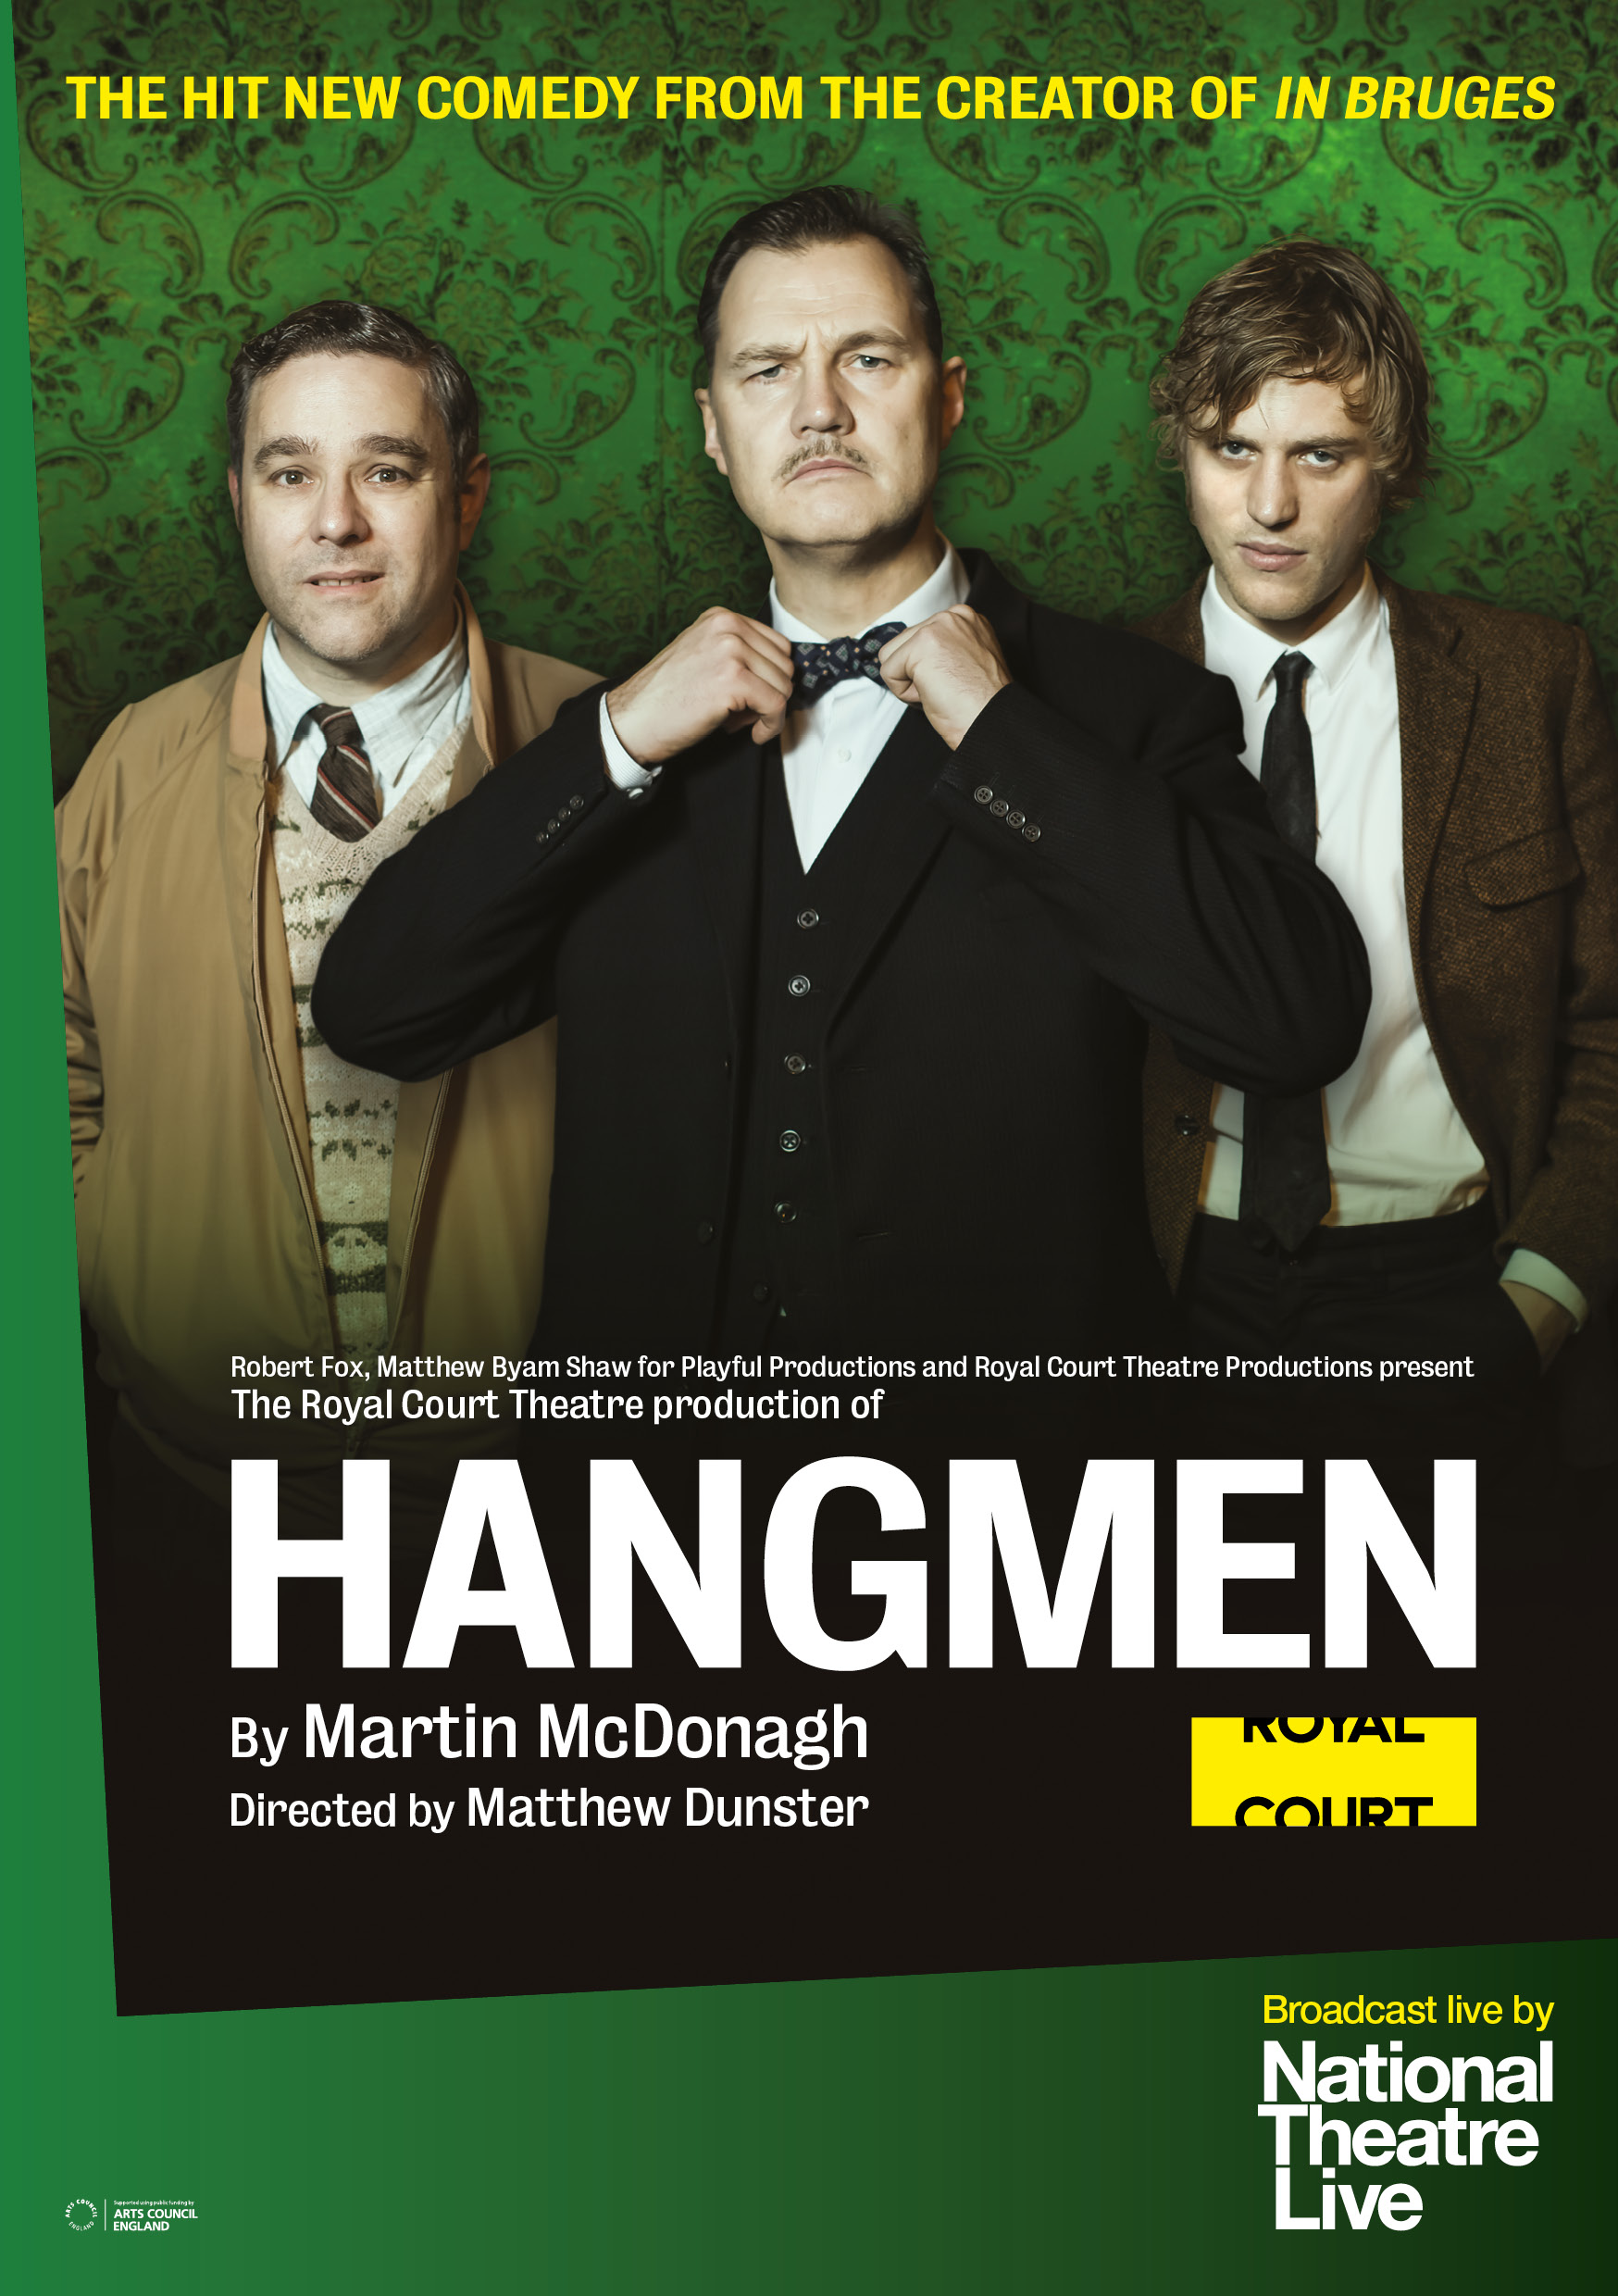 National Theatre Live to broadcast Hangmen in Sony 4K